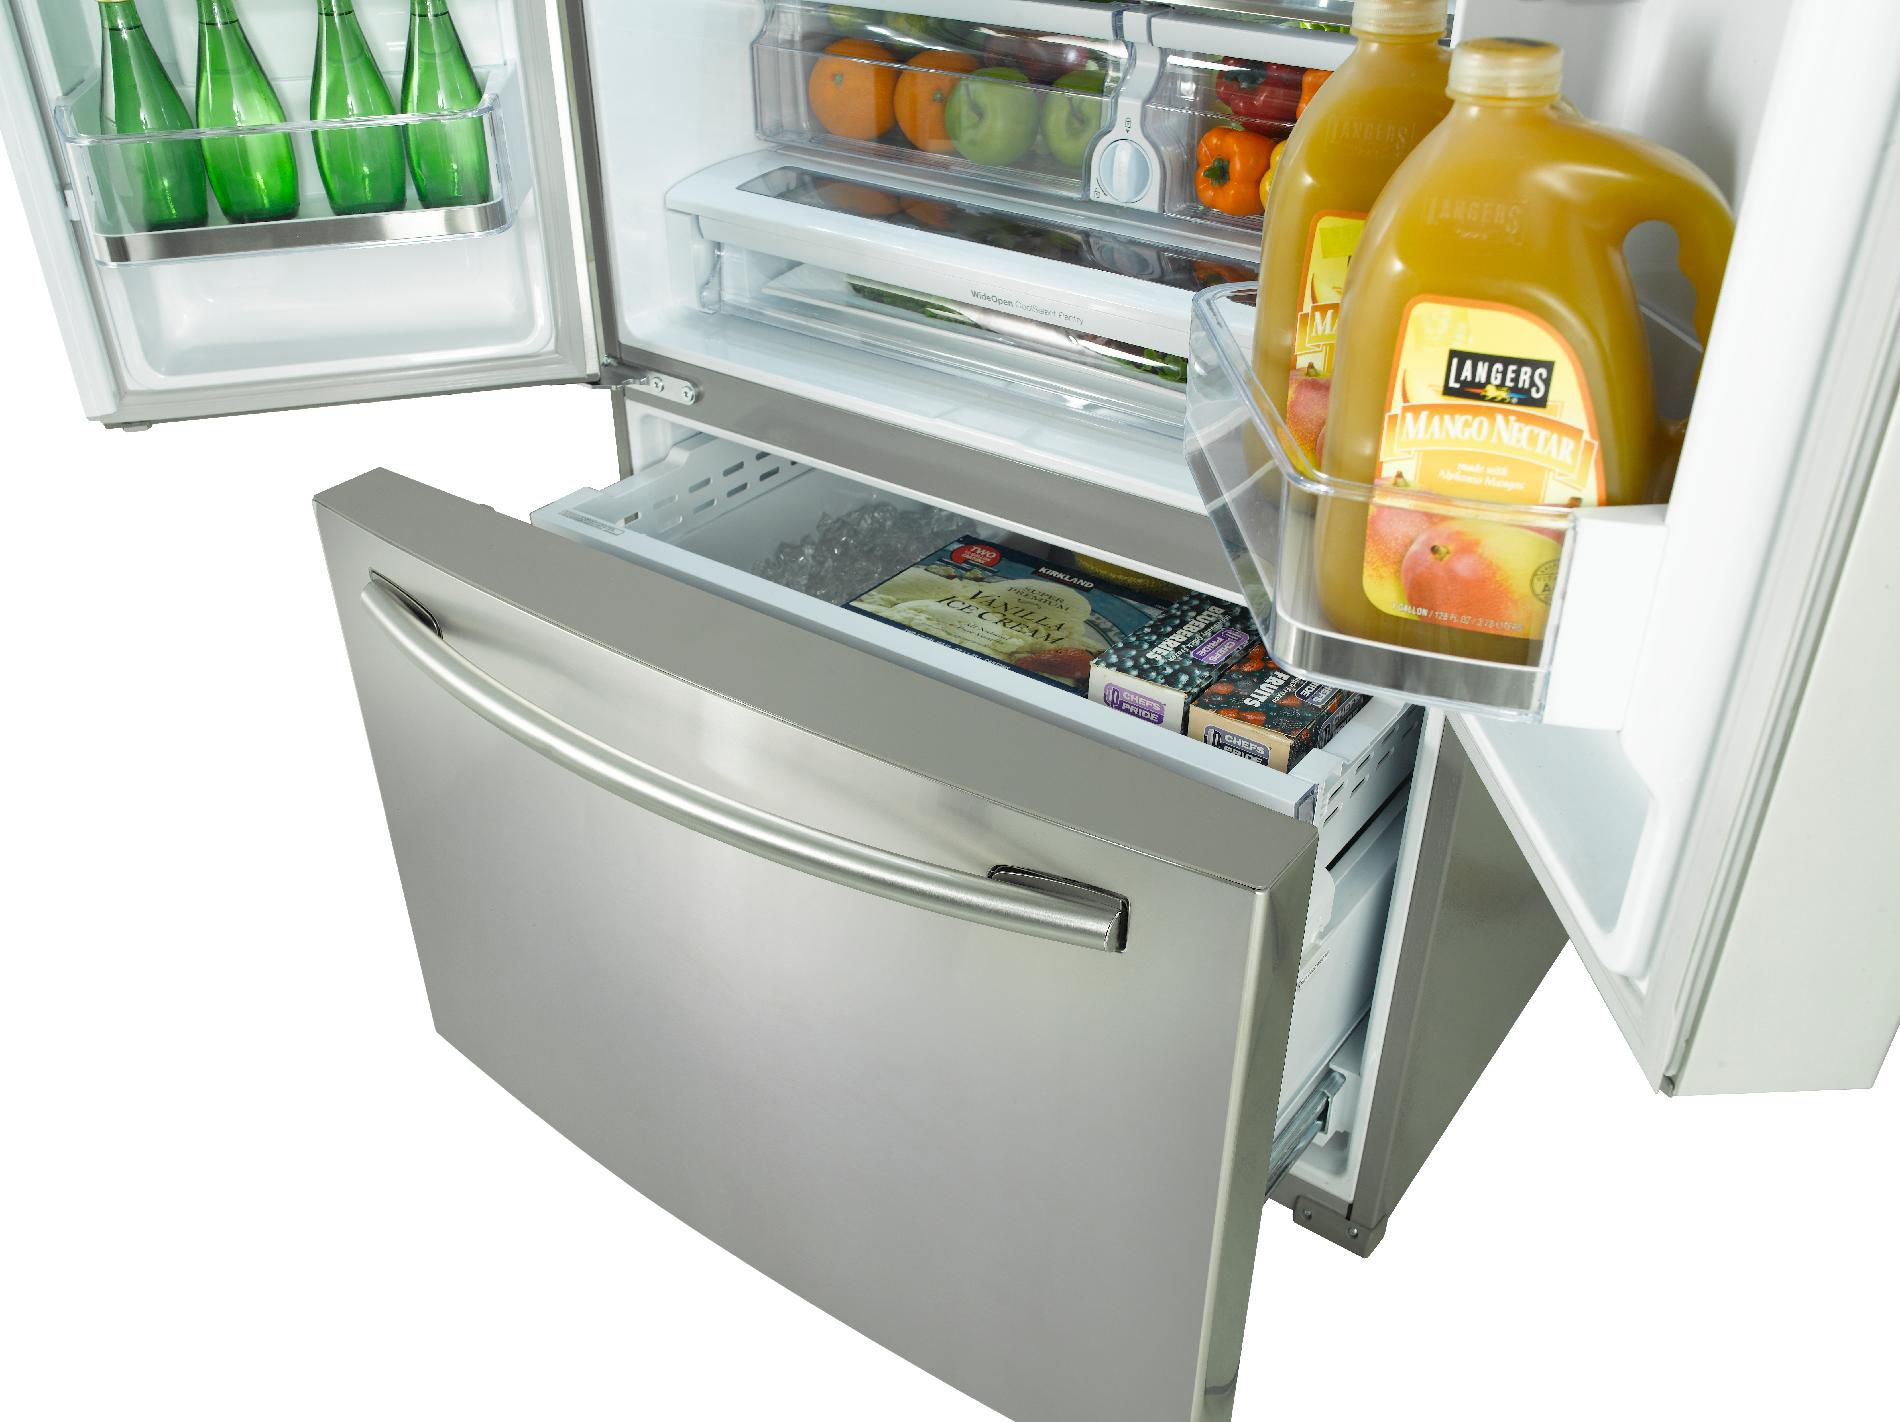 Samsung 32 cu. ft. French Door Refrigerator - Stainless Steel